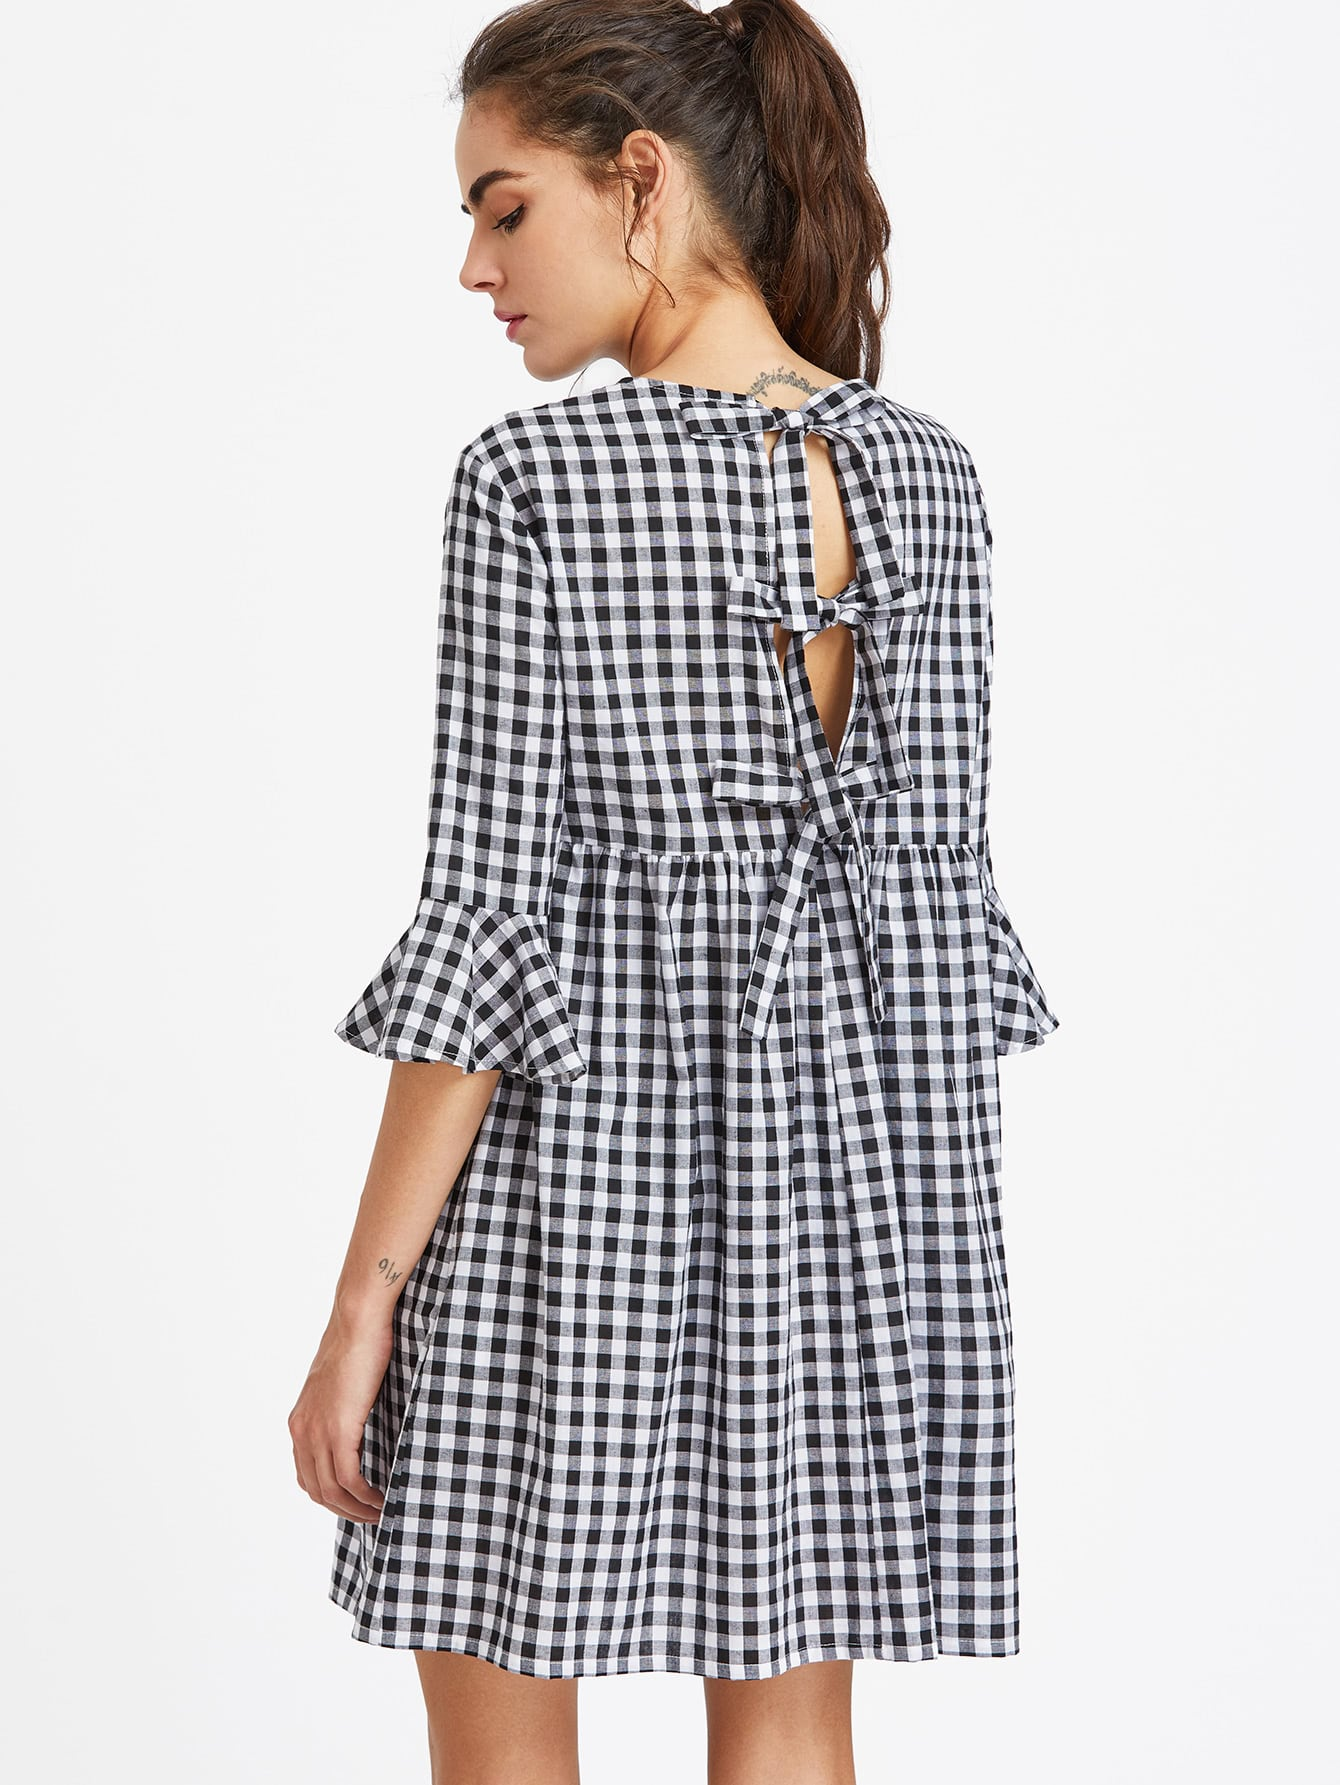 e8196e36853 ... Fun Sleeves and Back $18~ http://us.shein.com/Bow-Tie-Open-Back -Fluted-Sleeve-High-Waist-Gingham-Dress-p-353139-cat-1727.html ...